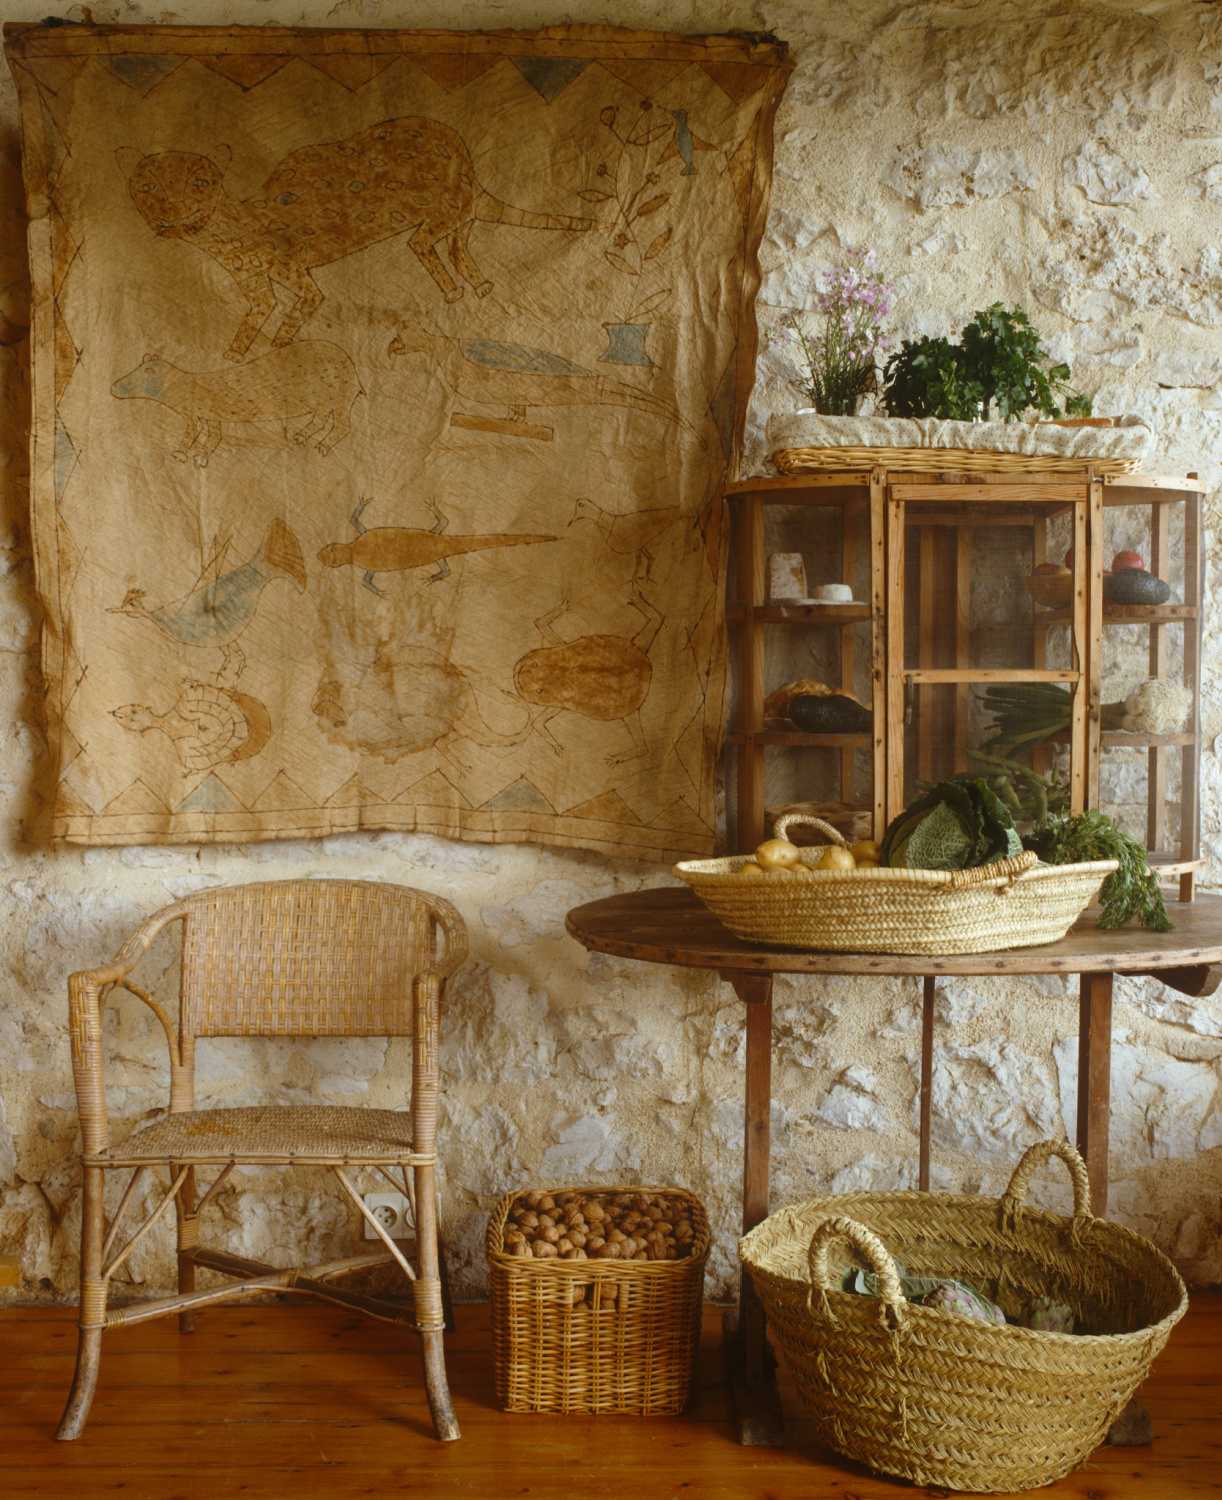 A primitive bark painting from Bali hangs beside an English larder sitting on a 'vigneronne', a collapsible table used by the grape pickers for lunch during the harvest. Featured in Shauna Varvel's PROVENCE STYLE. #interiordesign #frenchcountry #oldworldstyle